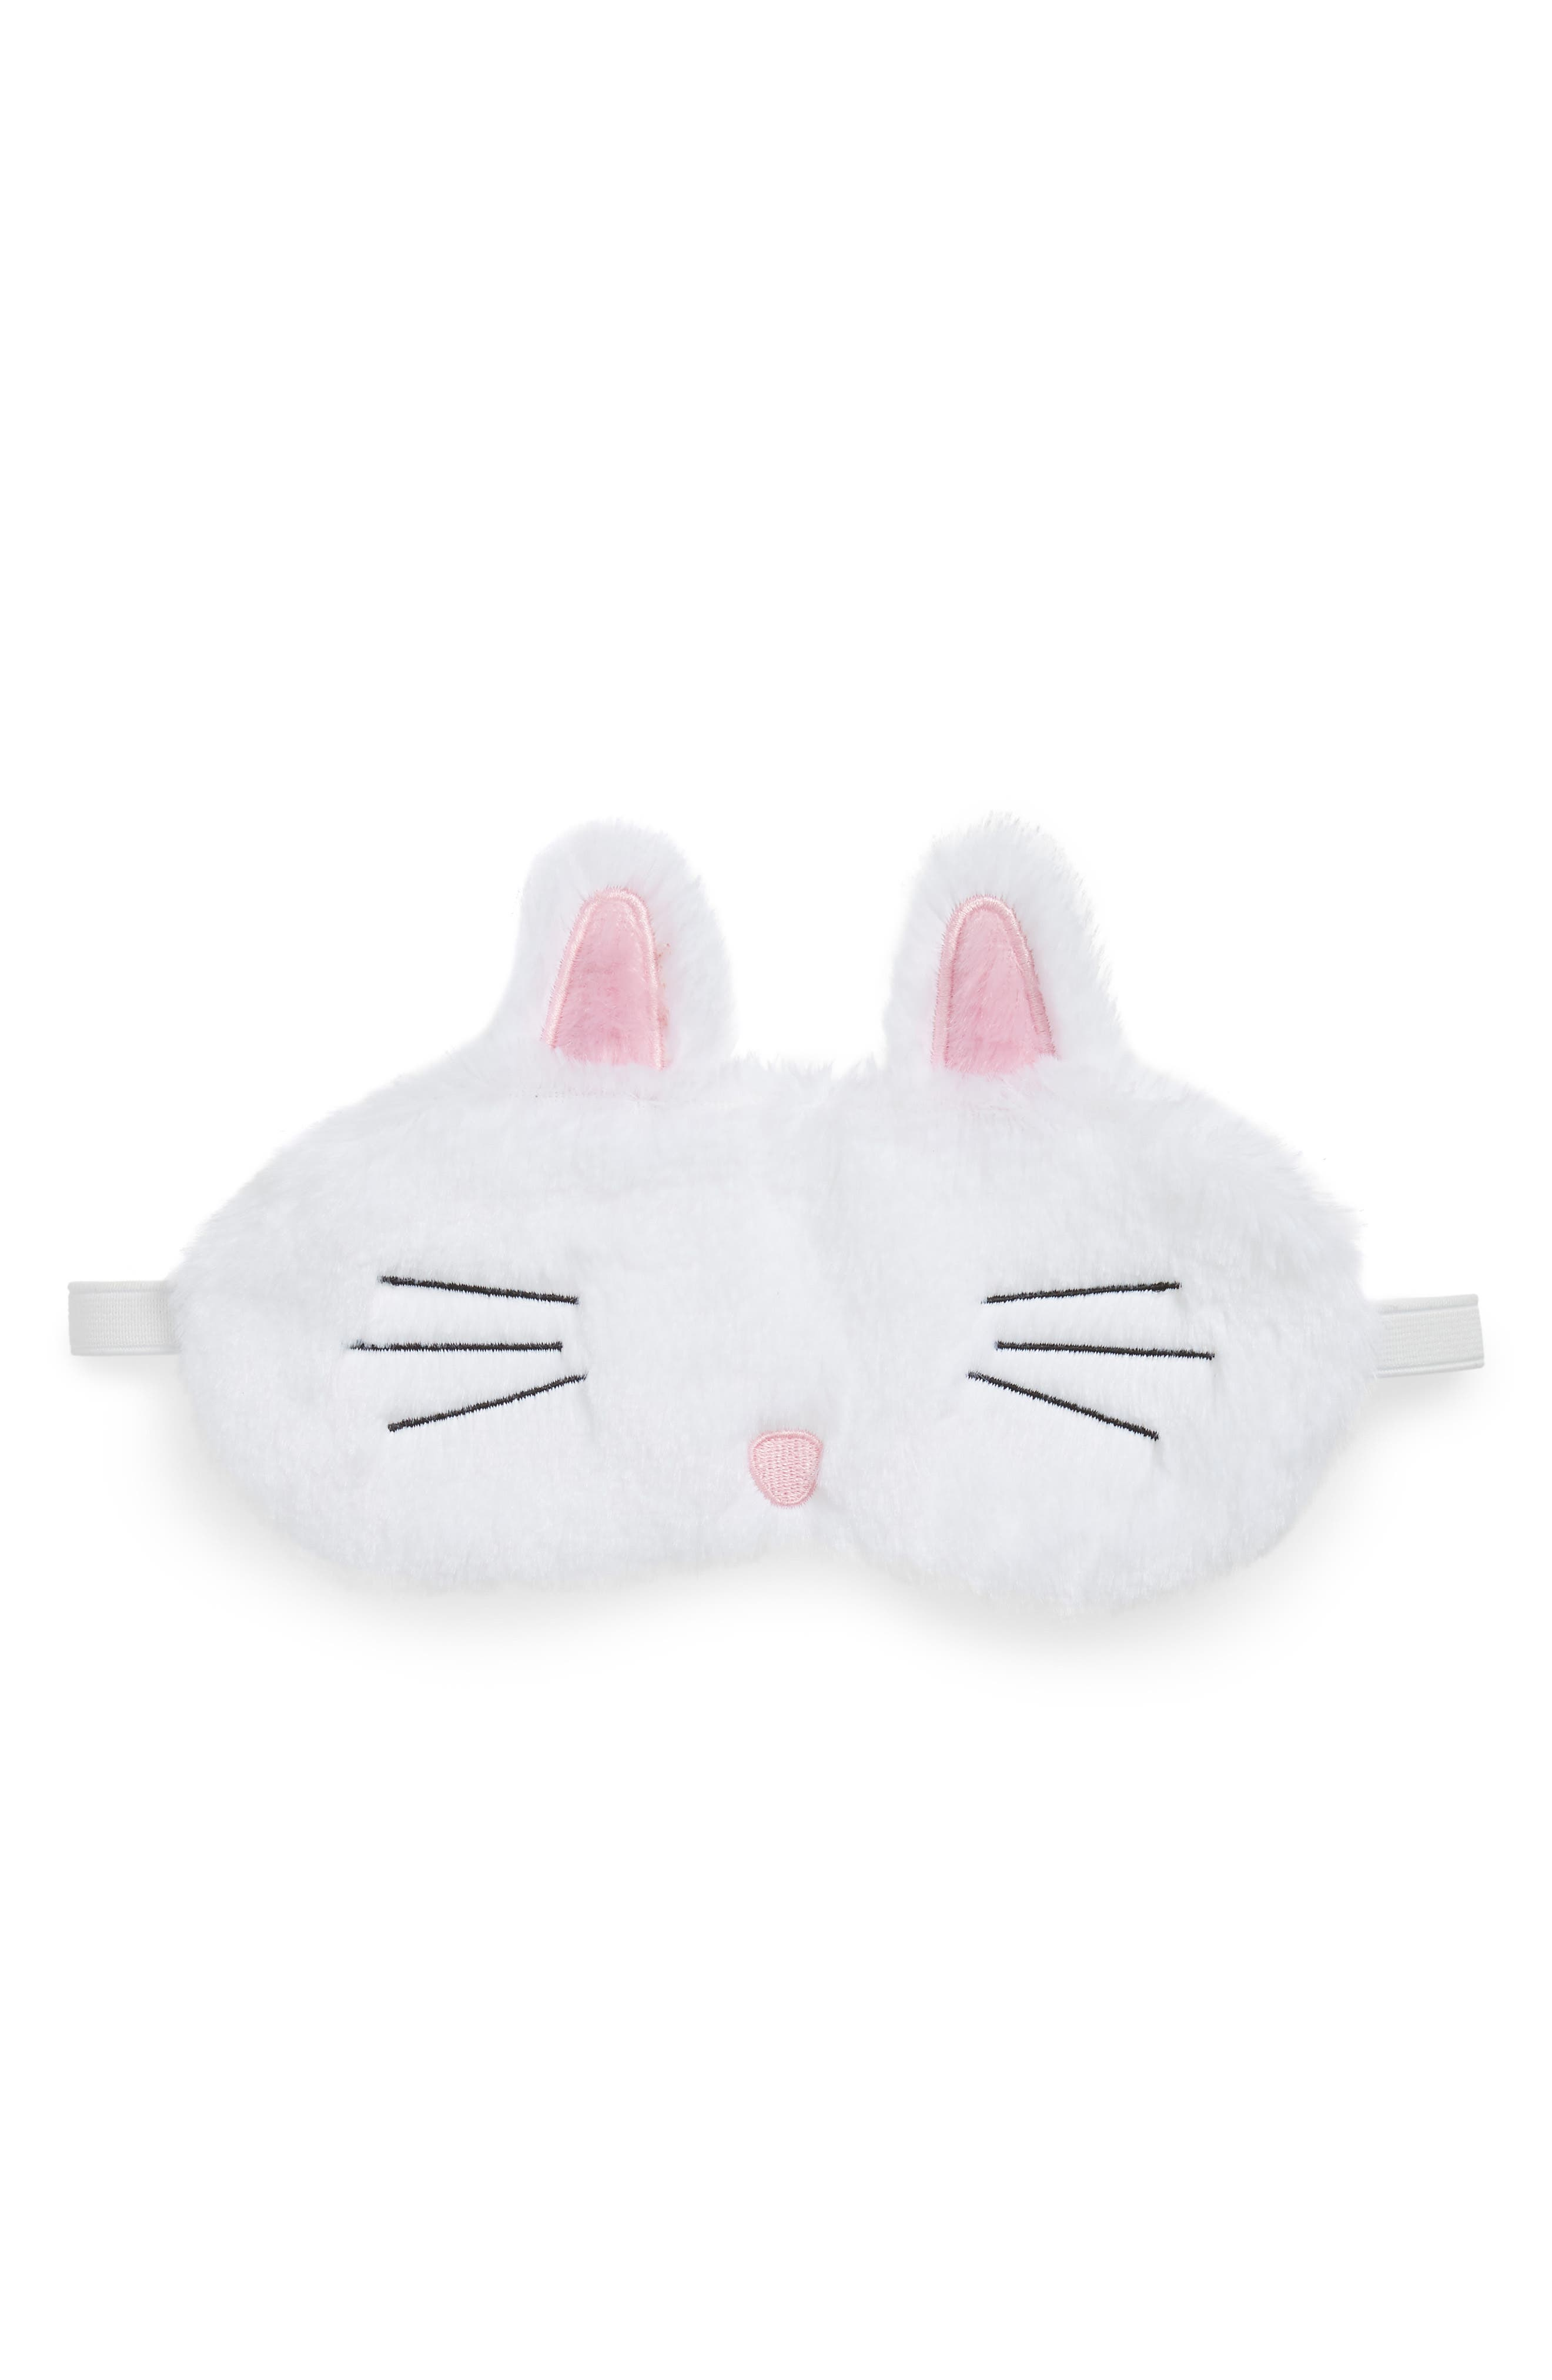 Bunny Spa Eye Mask,                         Main,                         color, 100